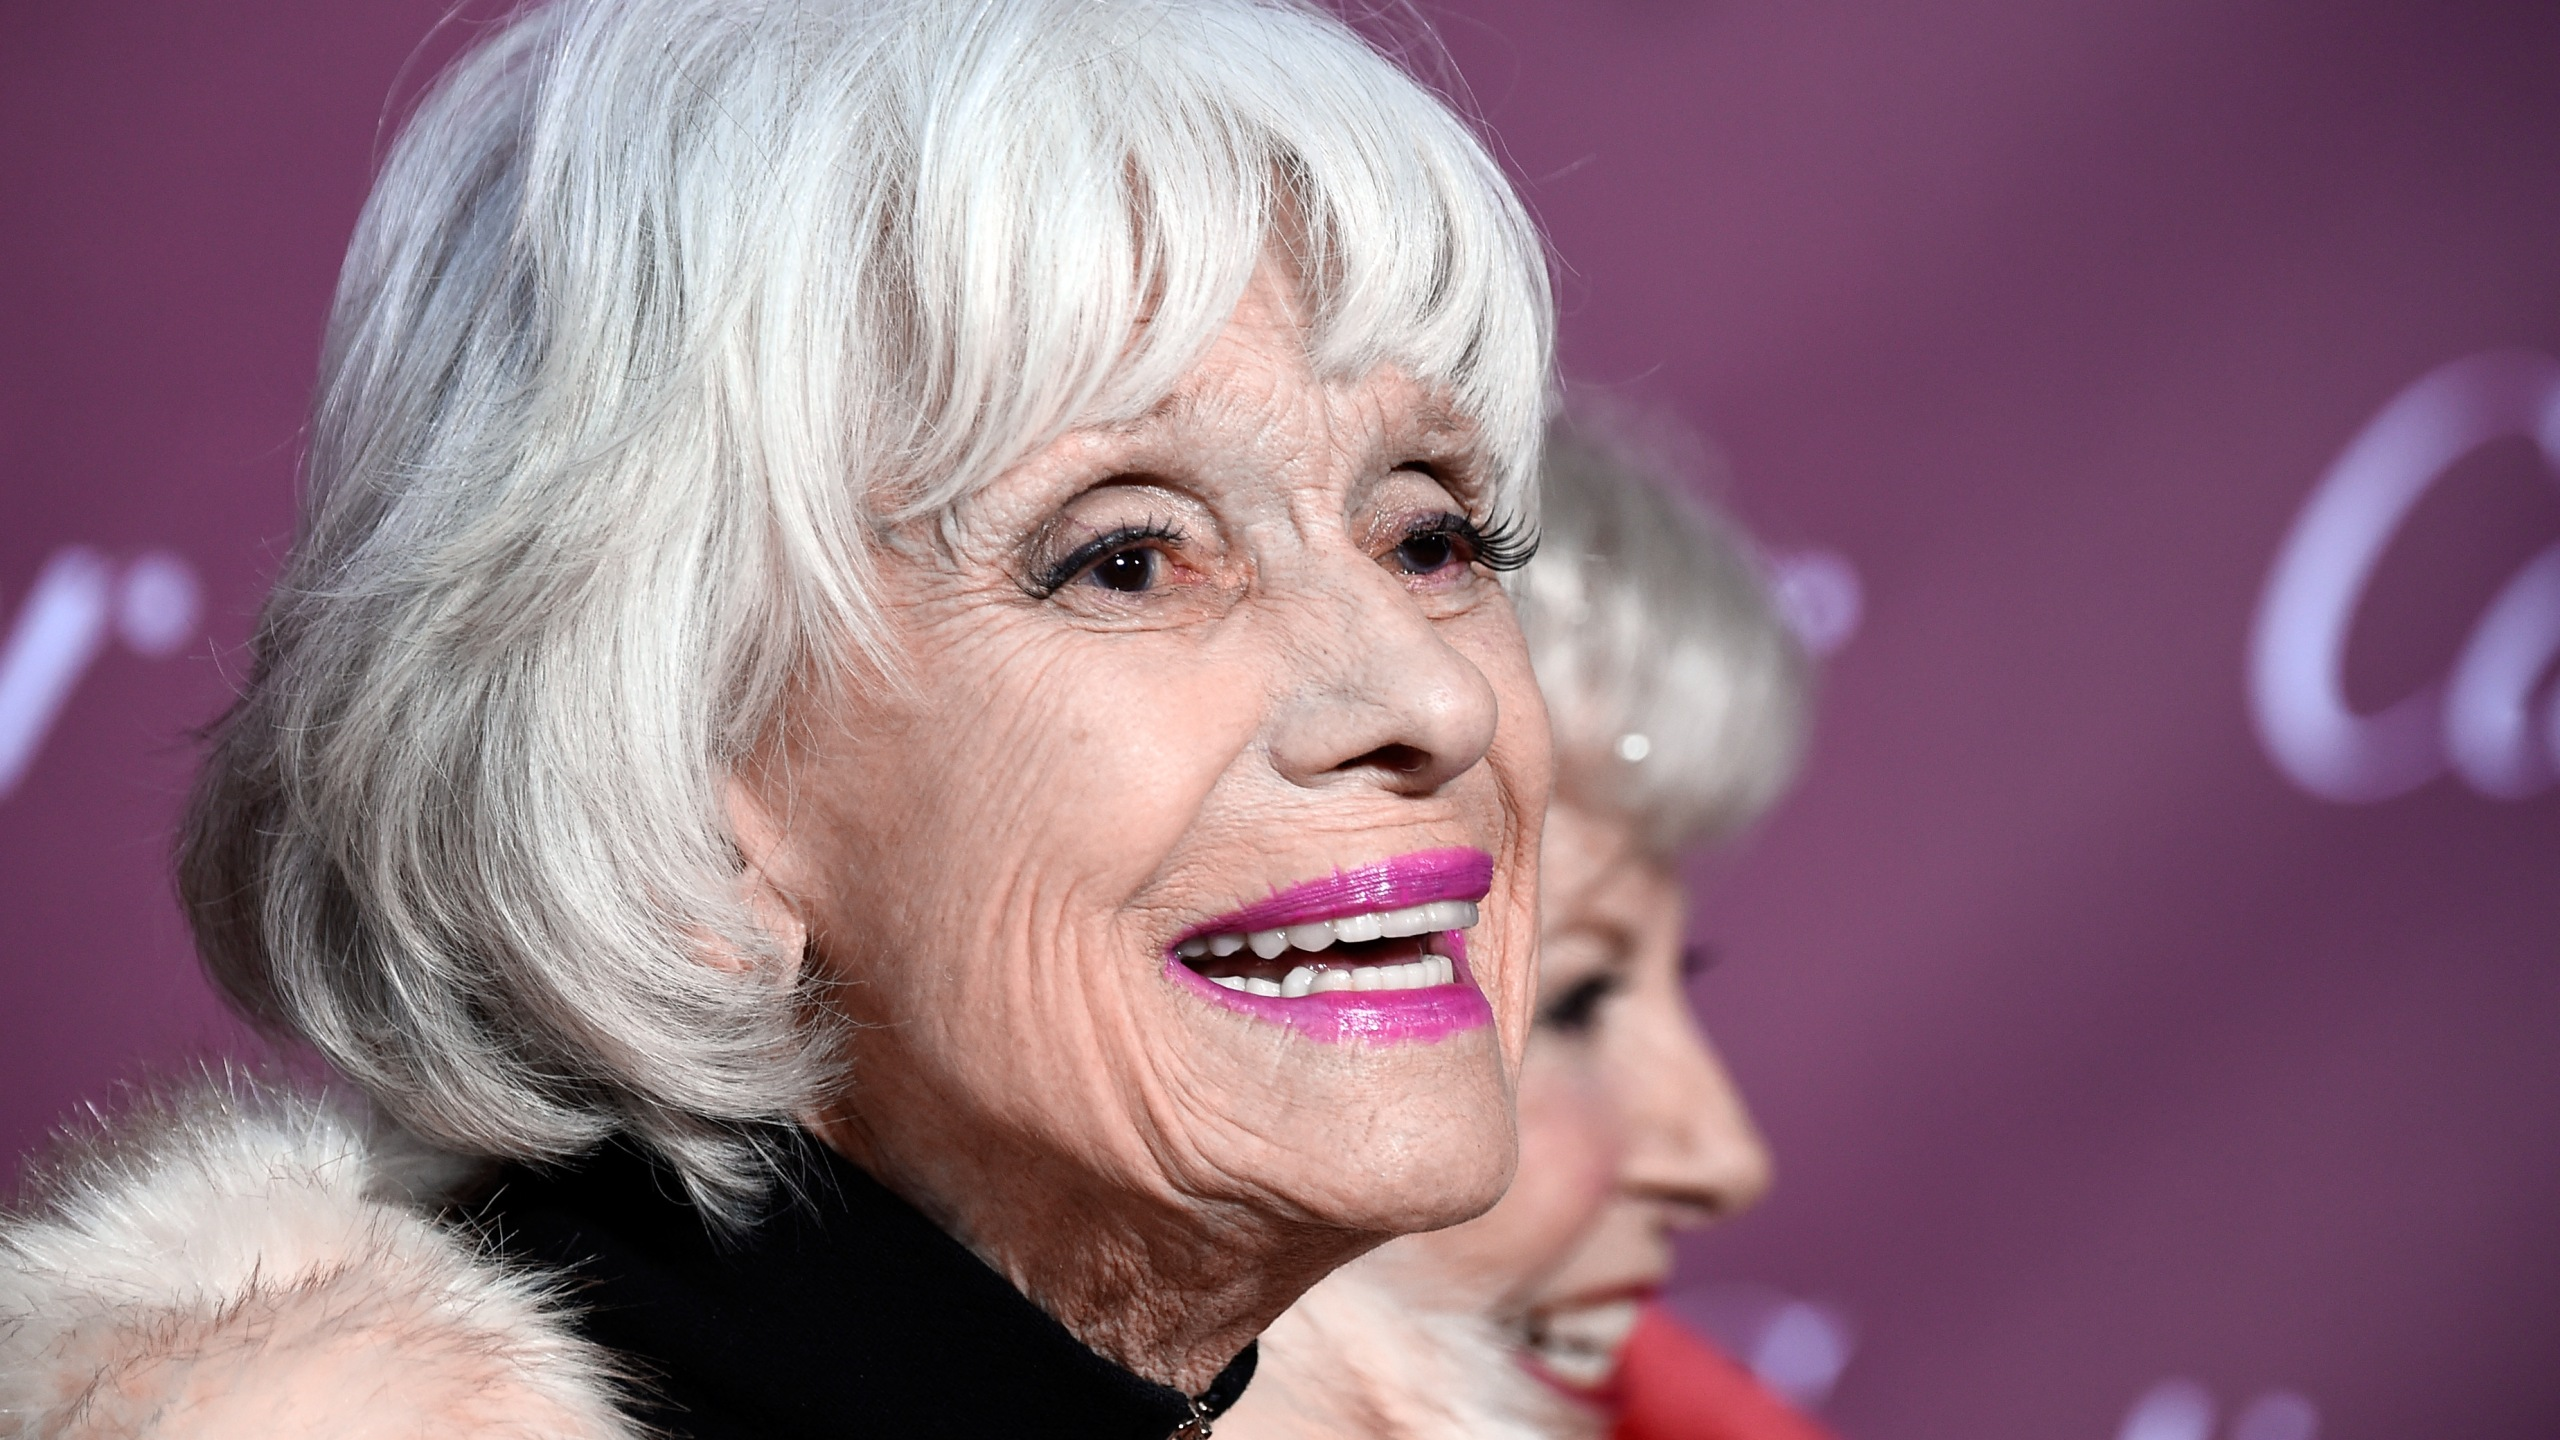 Carol Channing attends the 26th Annual Palm Springs International Film Festival Awards Gala at Parker Palm Springs on January 3, 2015 in Palm Springs, California. (Photo by Frazer Harrison/Getty Images)